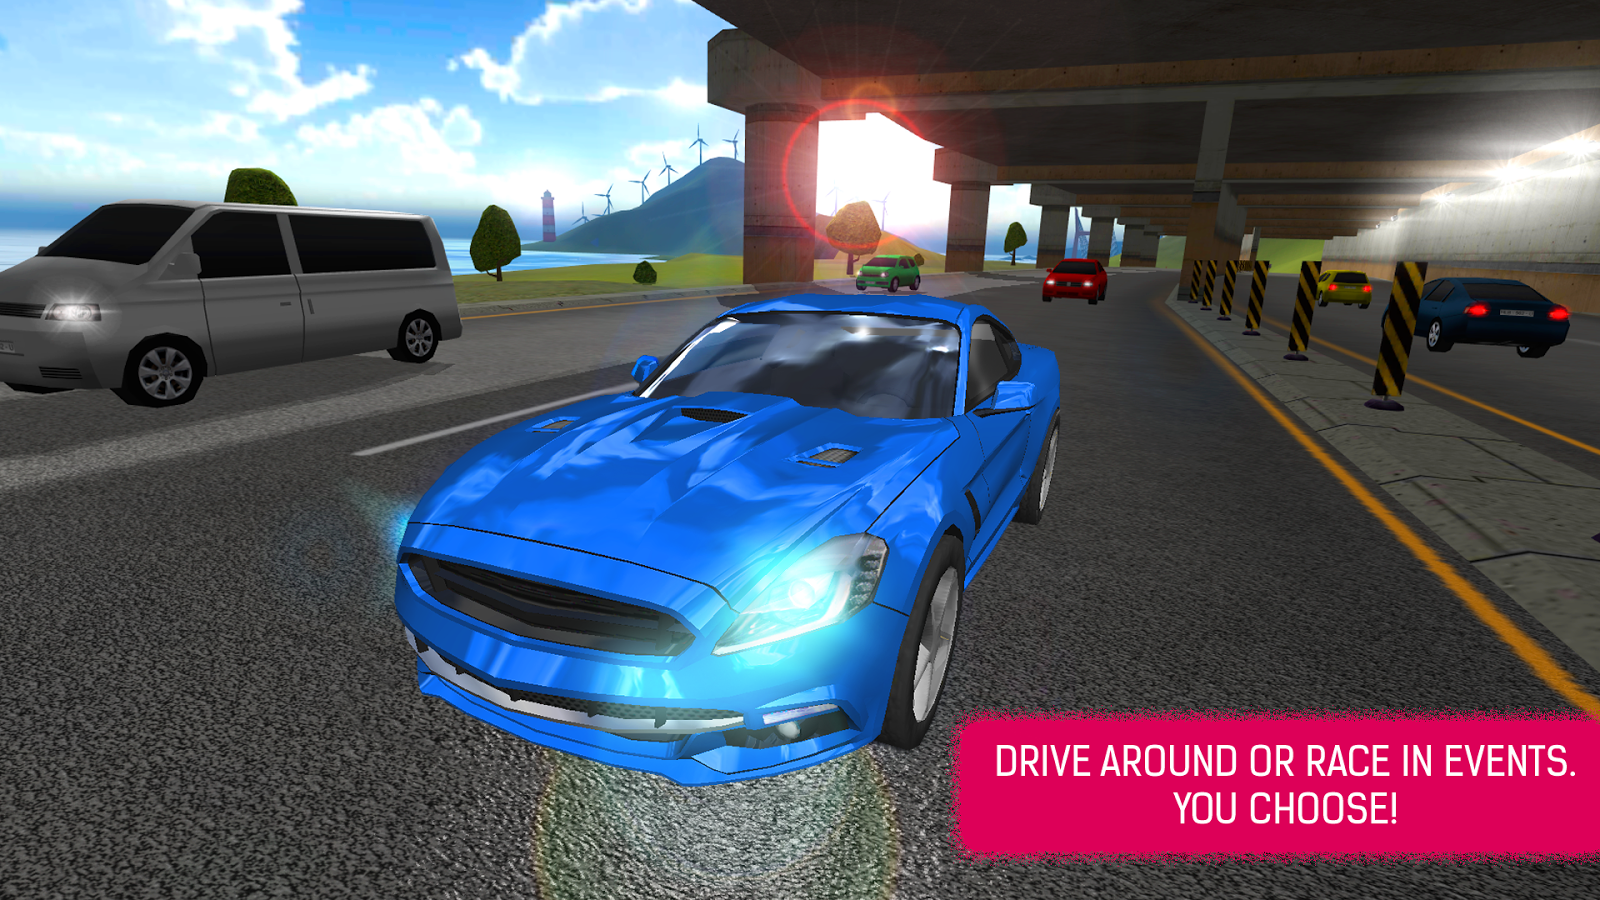 Super car city driving sim free games free online - Car Simulator Racing Game Screenshot